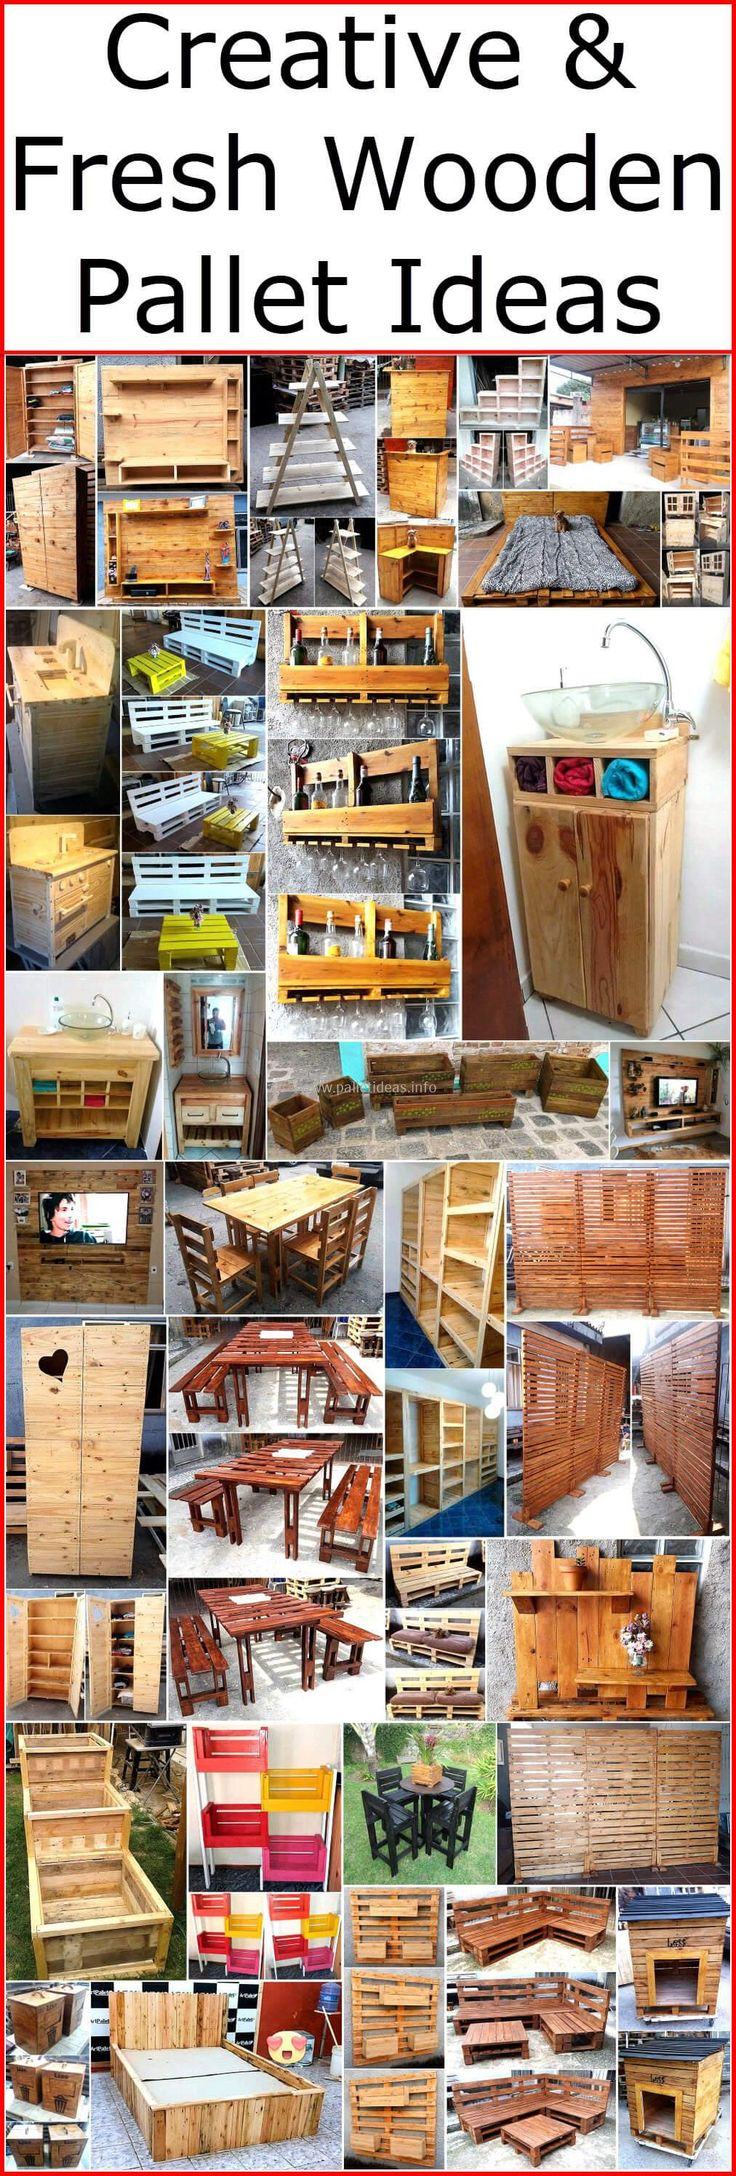 Creative & Fresh Wooden. These pallet ideas ...